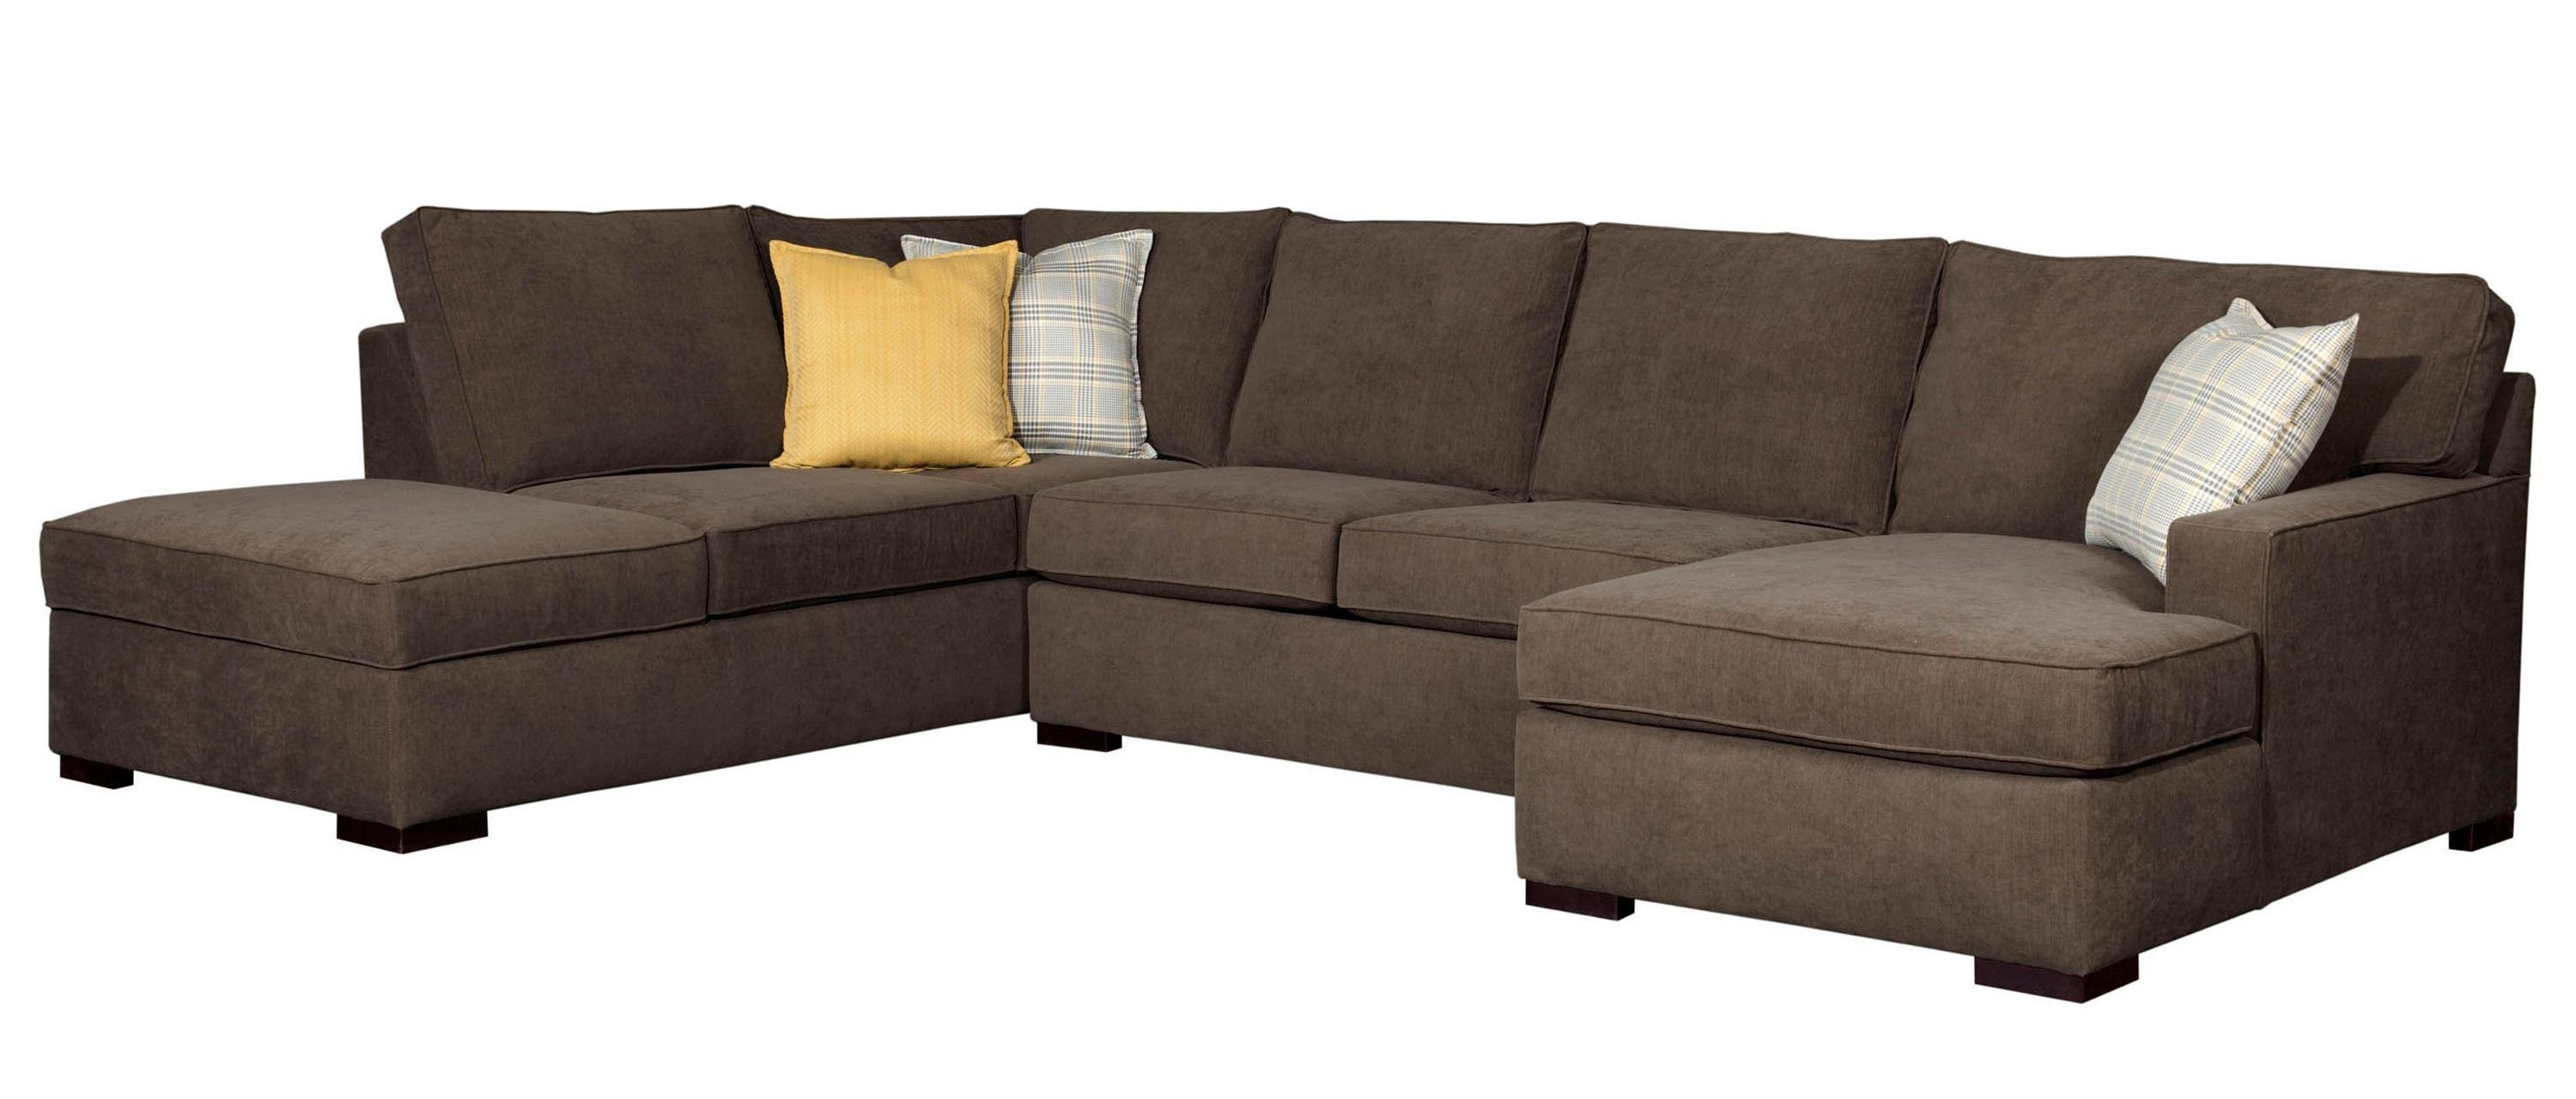 Broyhill Furniture Raphael Contemporary Sectional Sofa With Raf Within Broyhill Sectional Sofa (View 3 of 15)